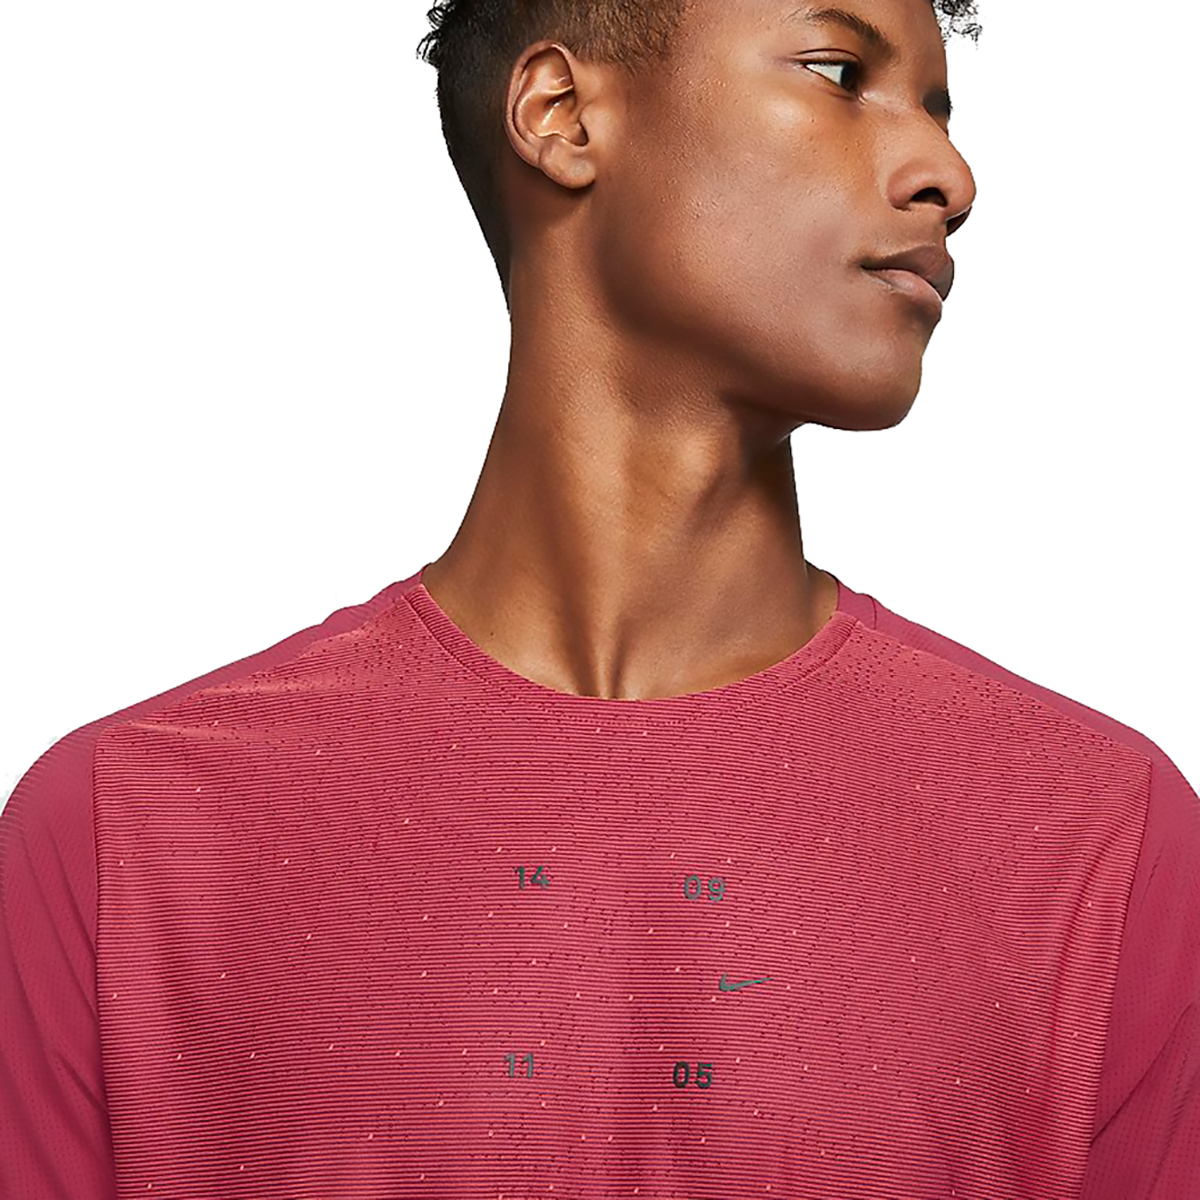 Men's Nike Tech Pack Top Hybrid Short Sleeve  - Color: Red - Size: S, Red, large, image 3